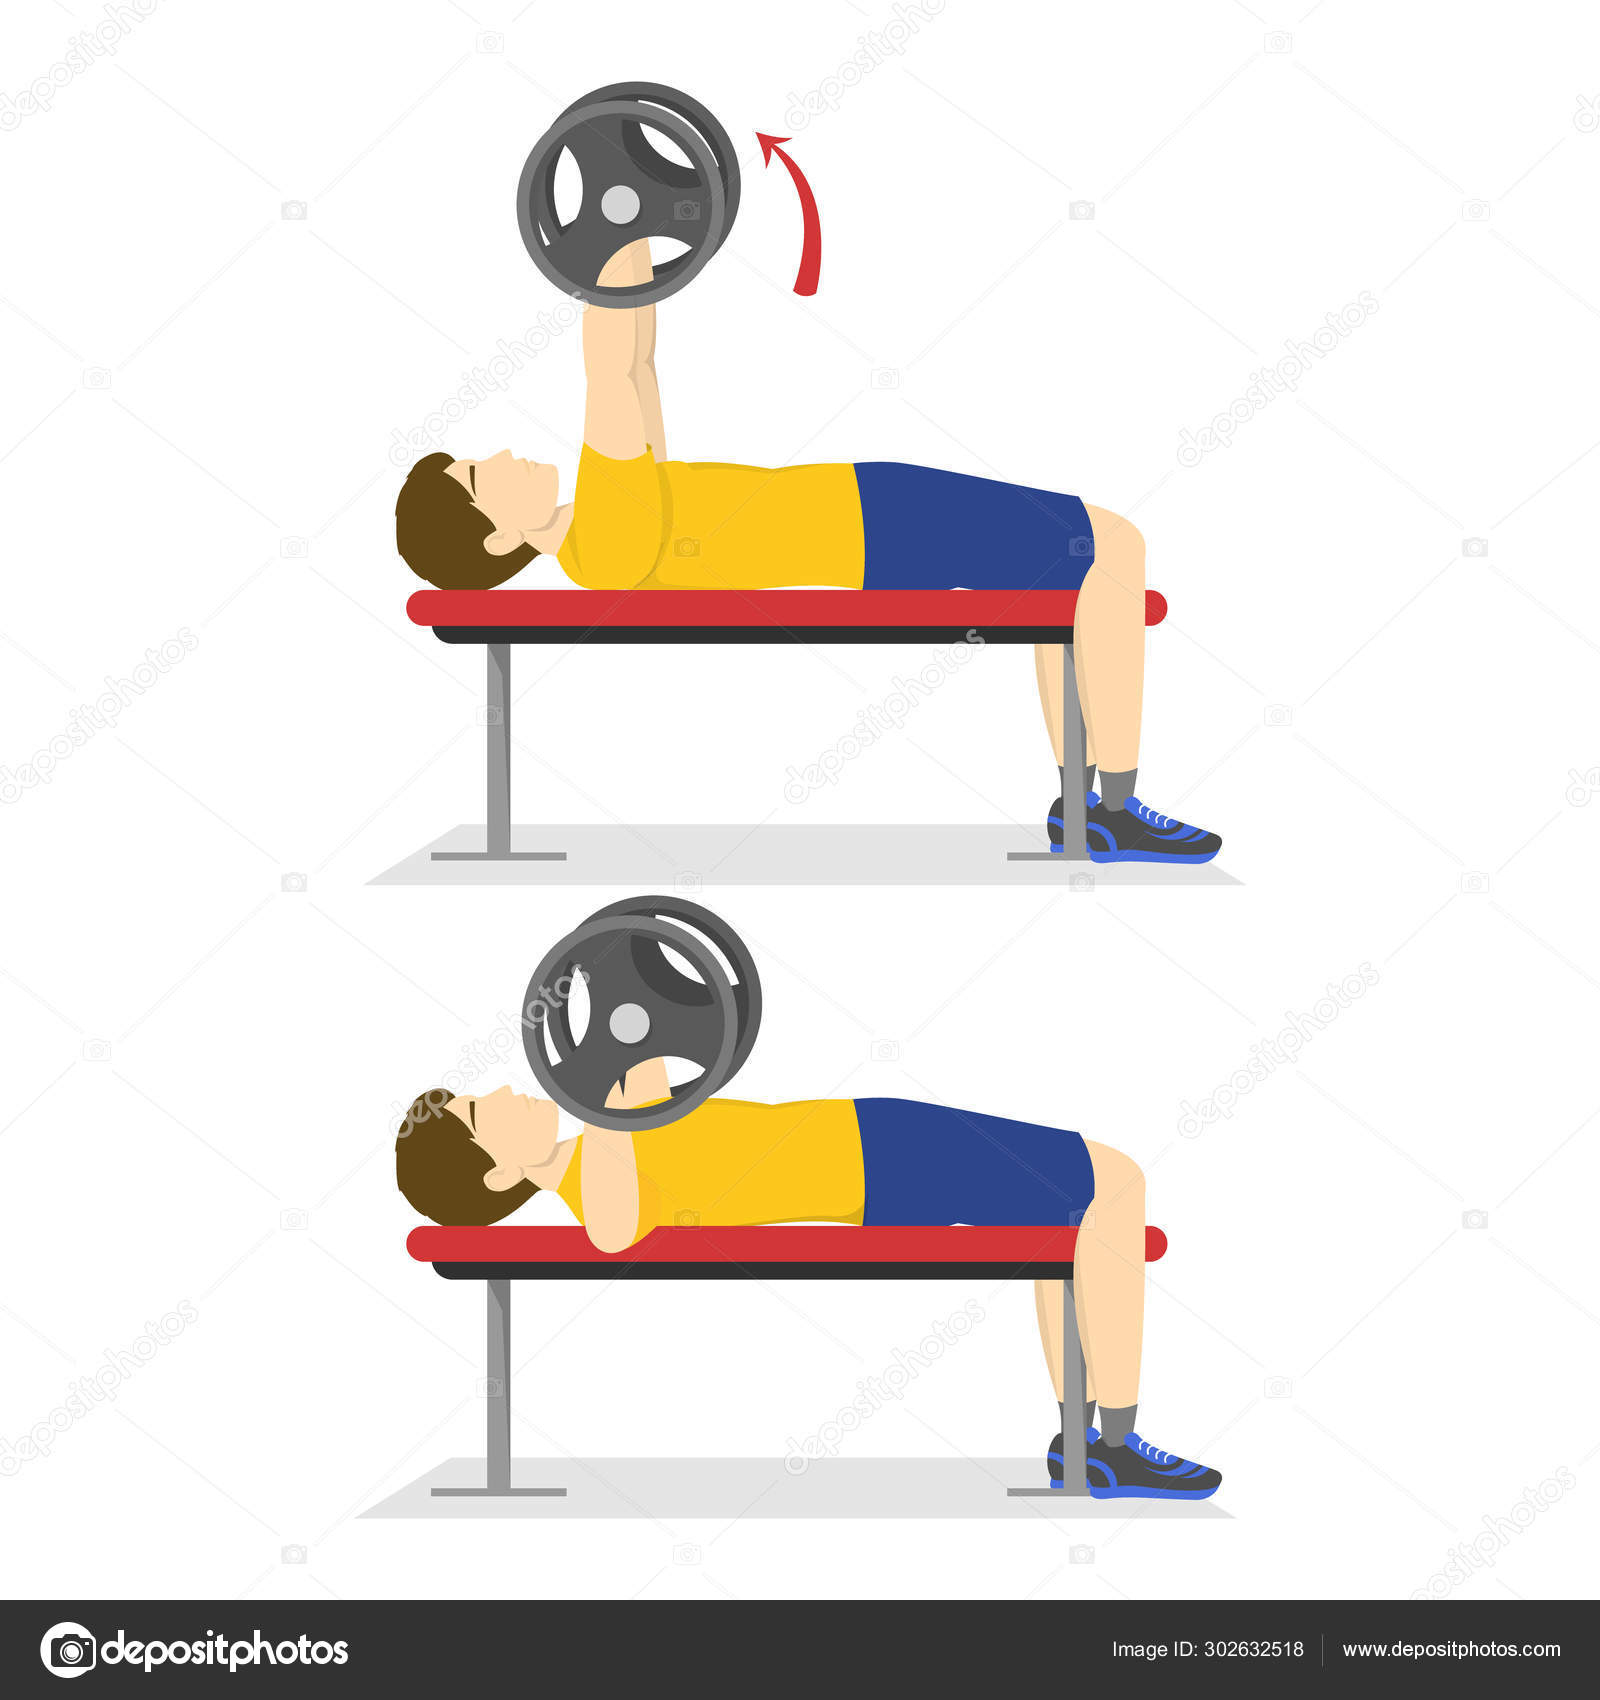 Swell Bench Press Exercise For Chest Man Doing Workout Stock Pdpeps Interior Chair Design Pdpepsorg